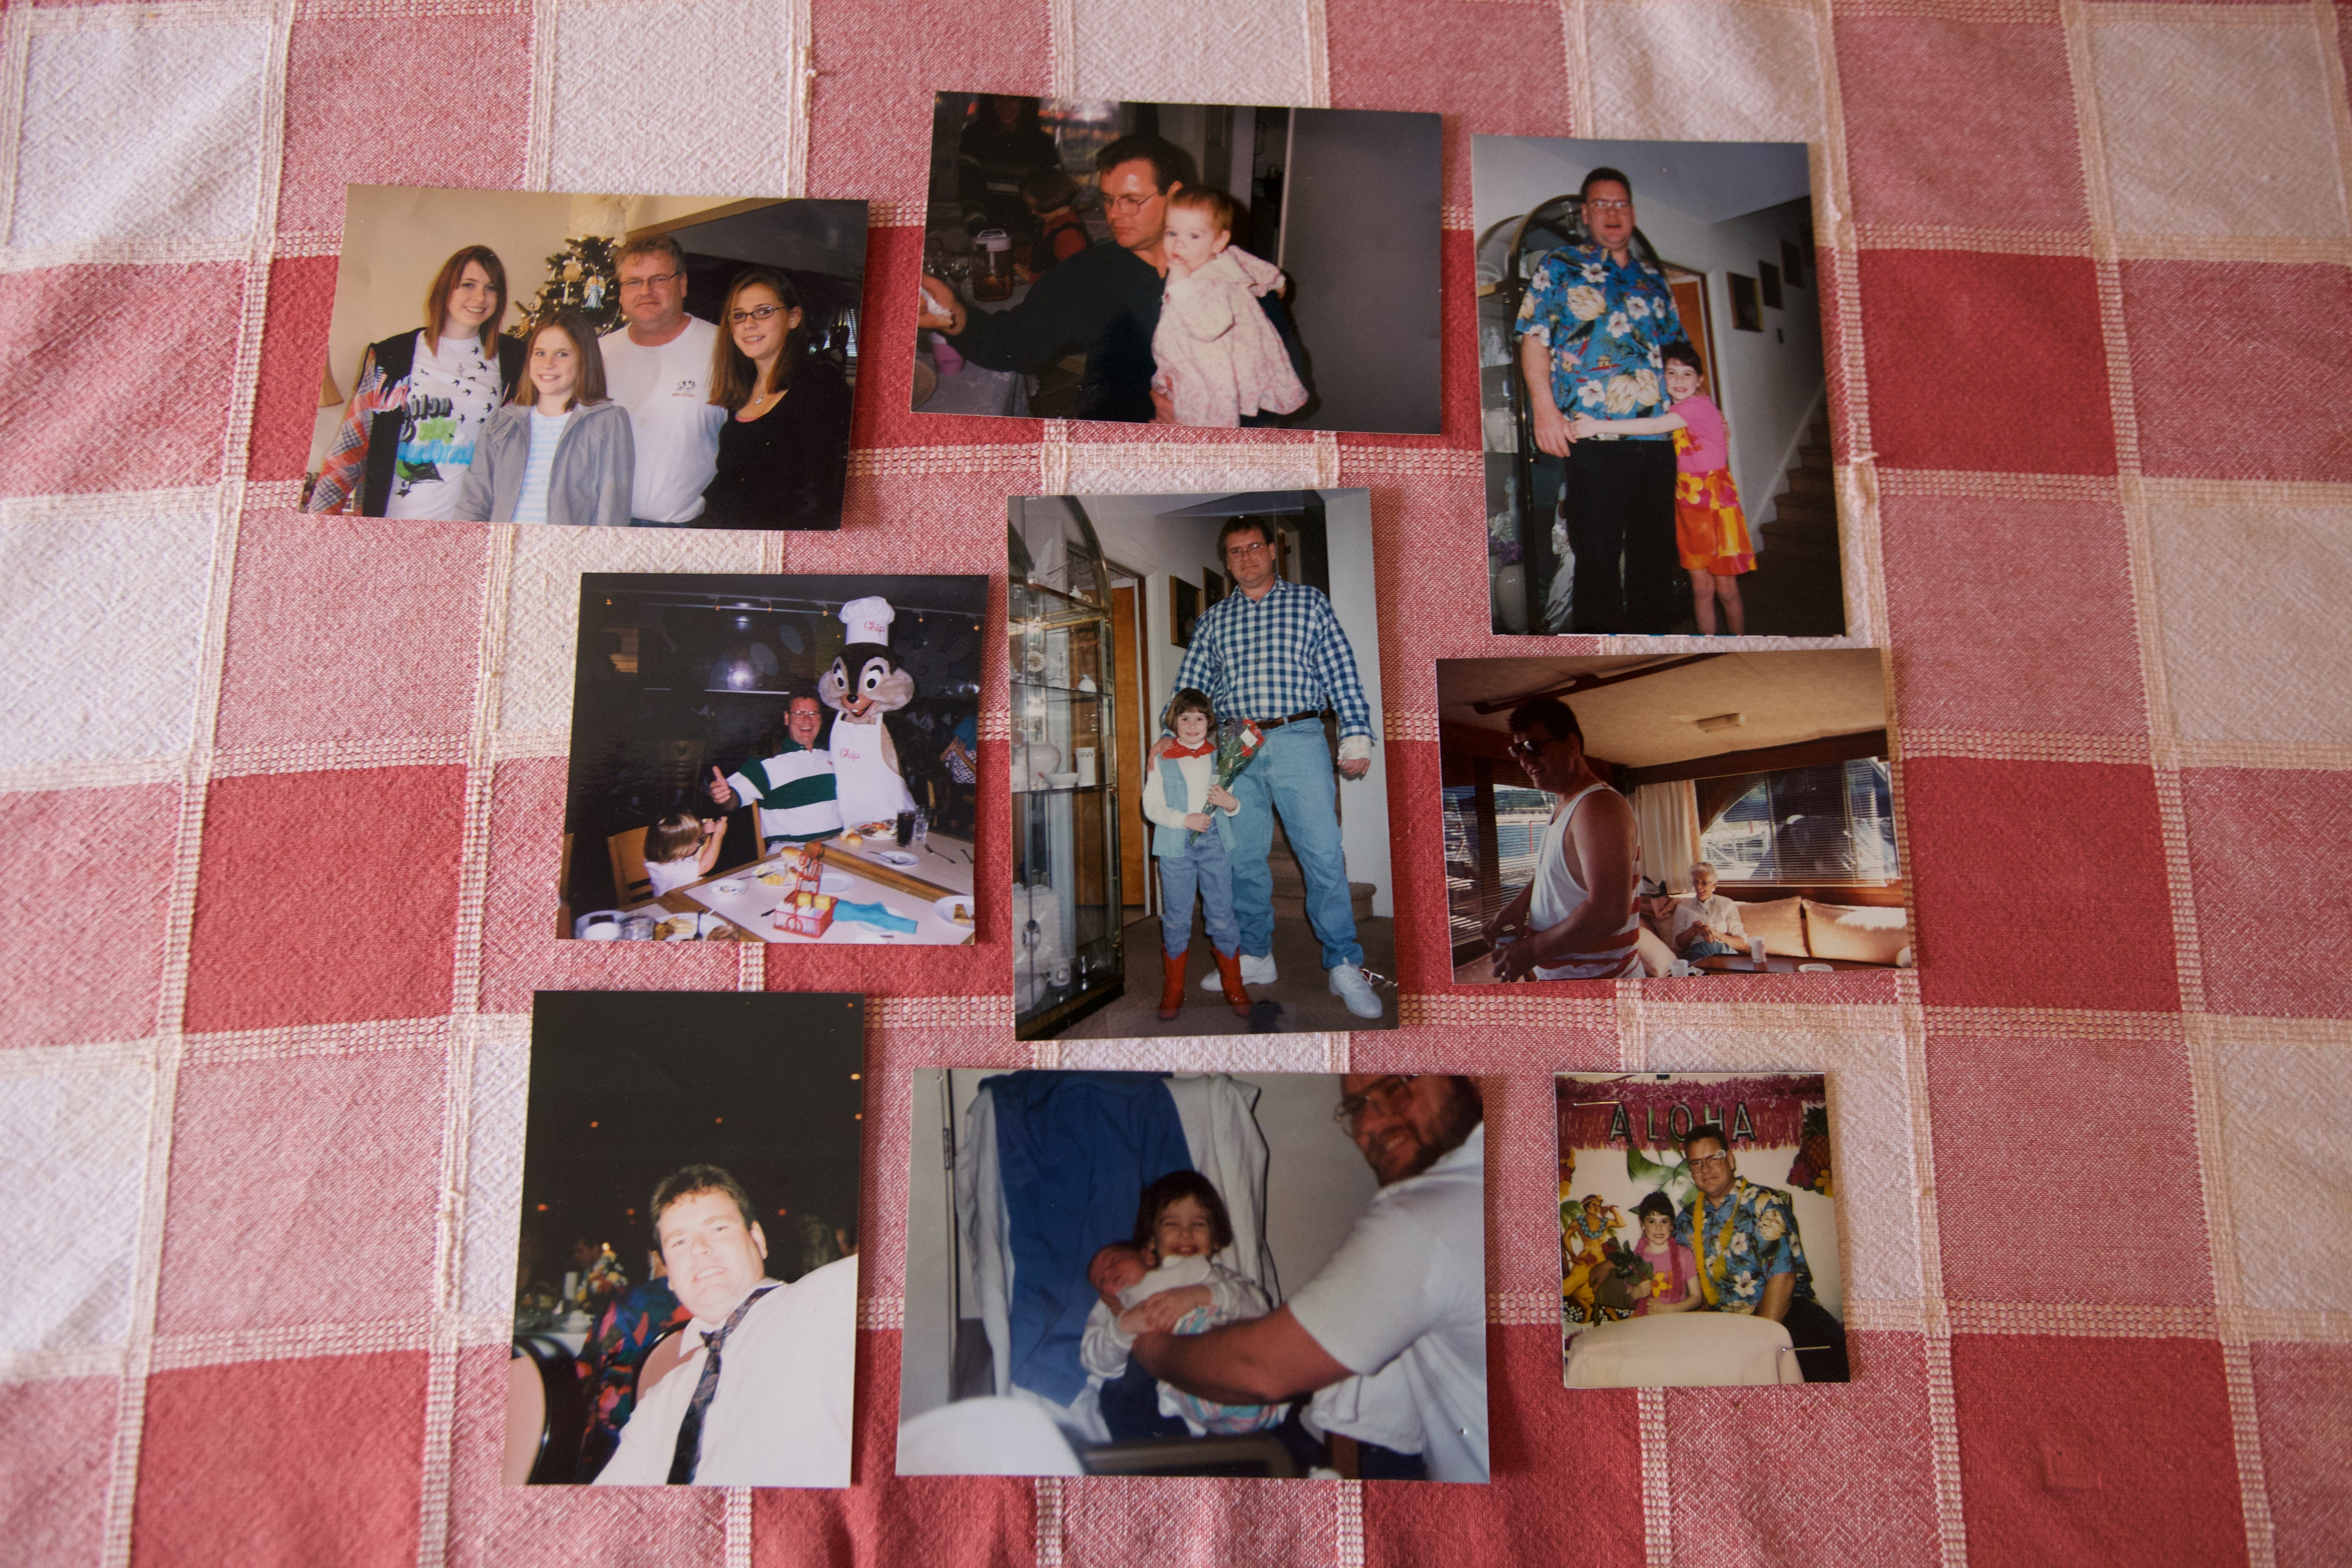 Family photos featuring James Walsh, who was killed by a suspect fleeing police.